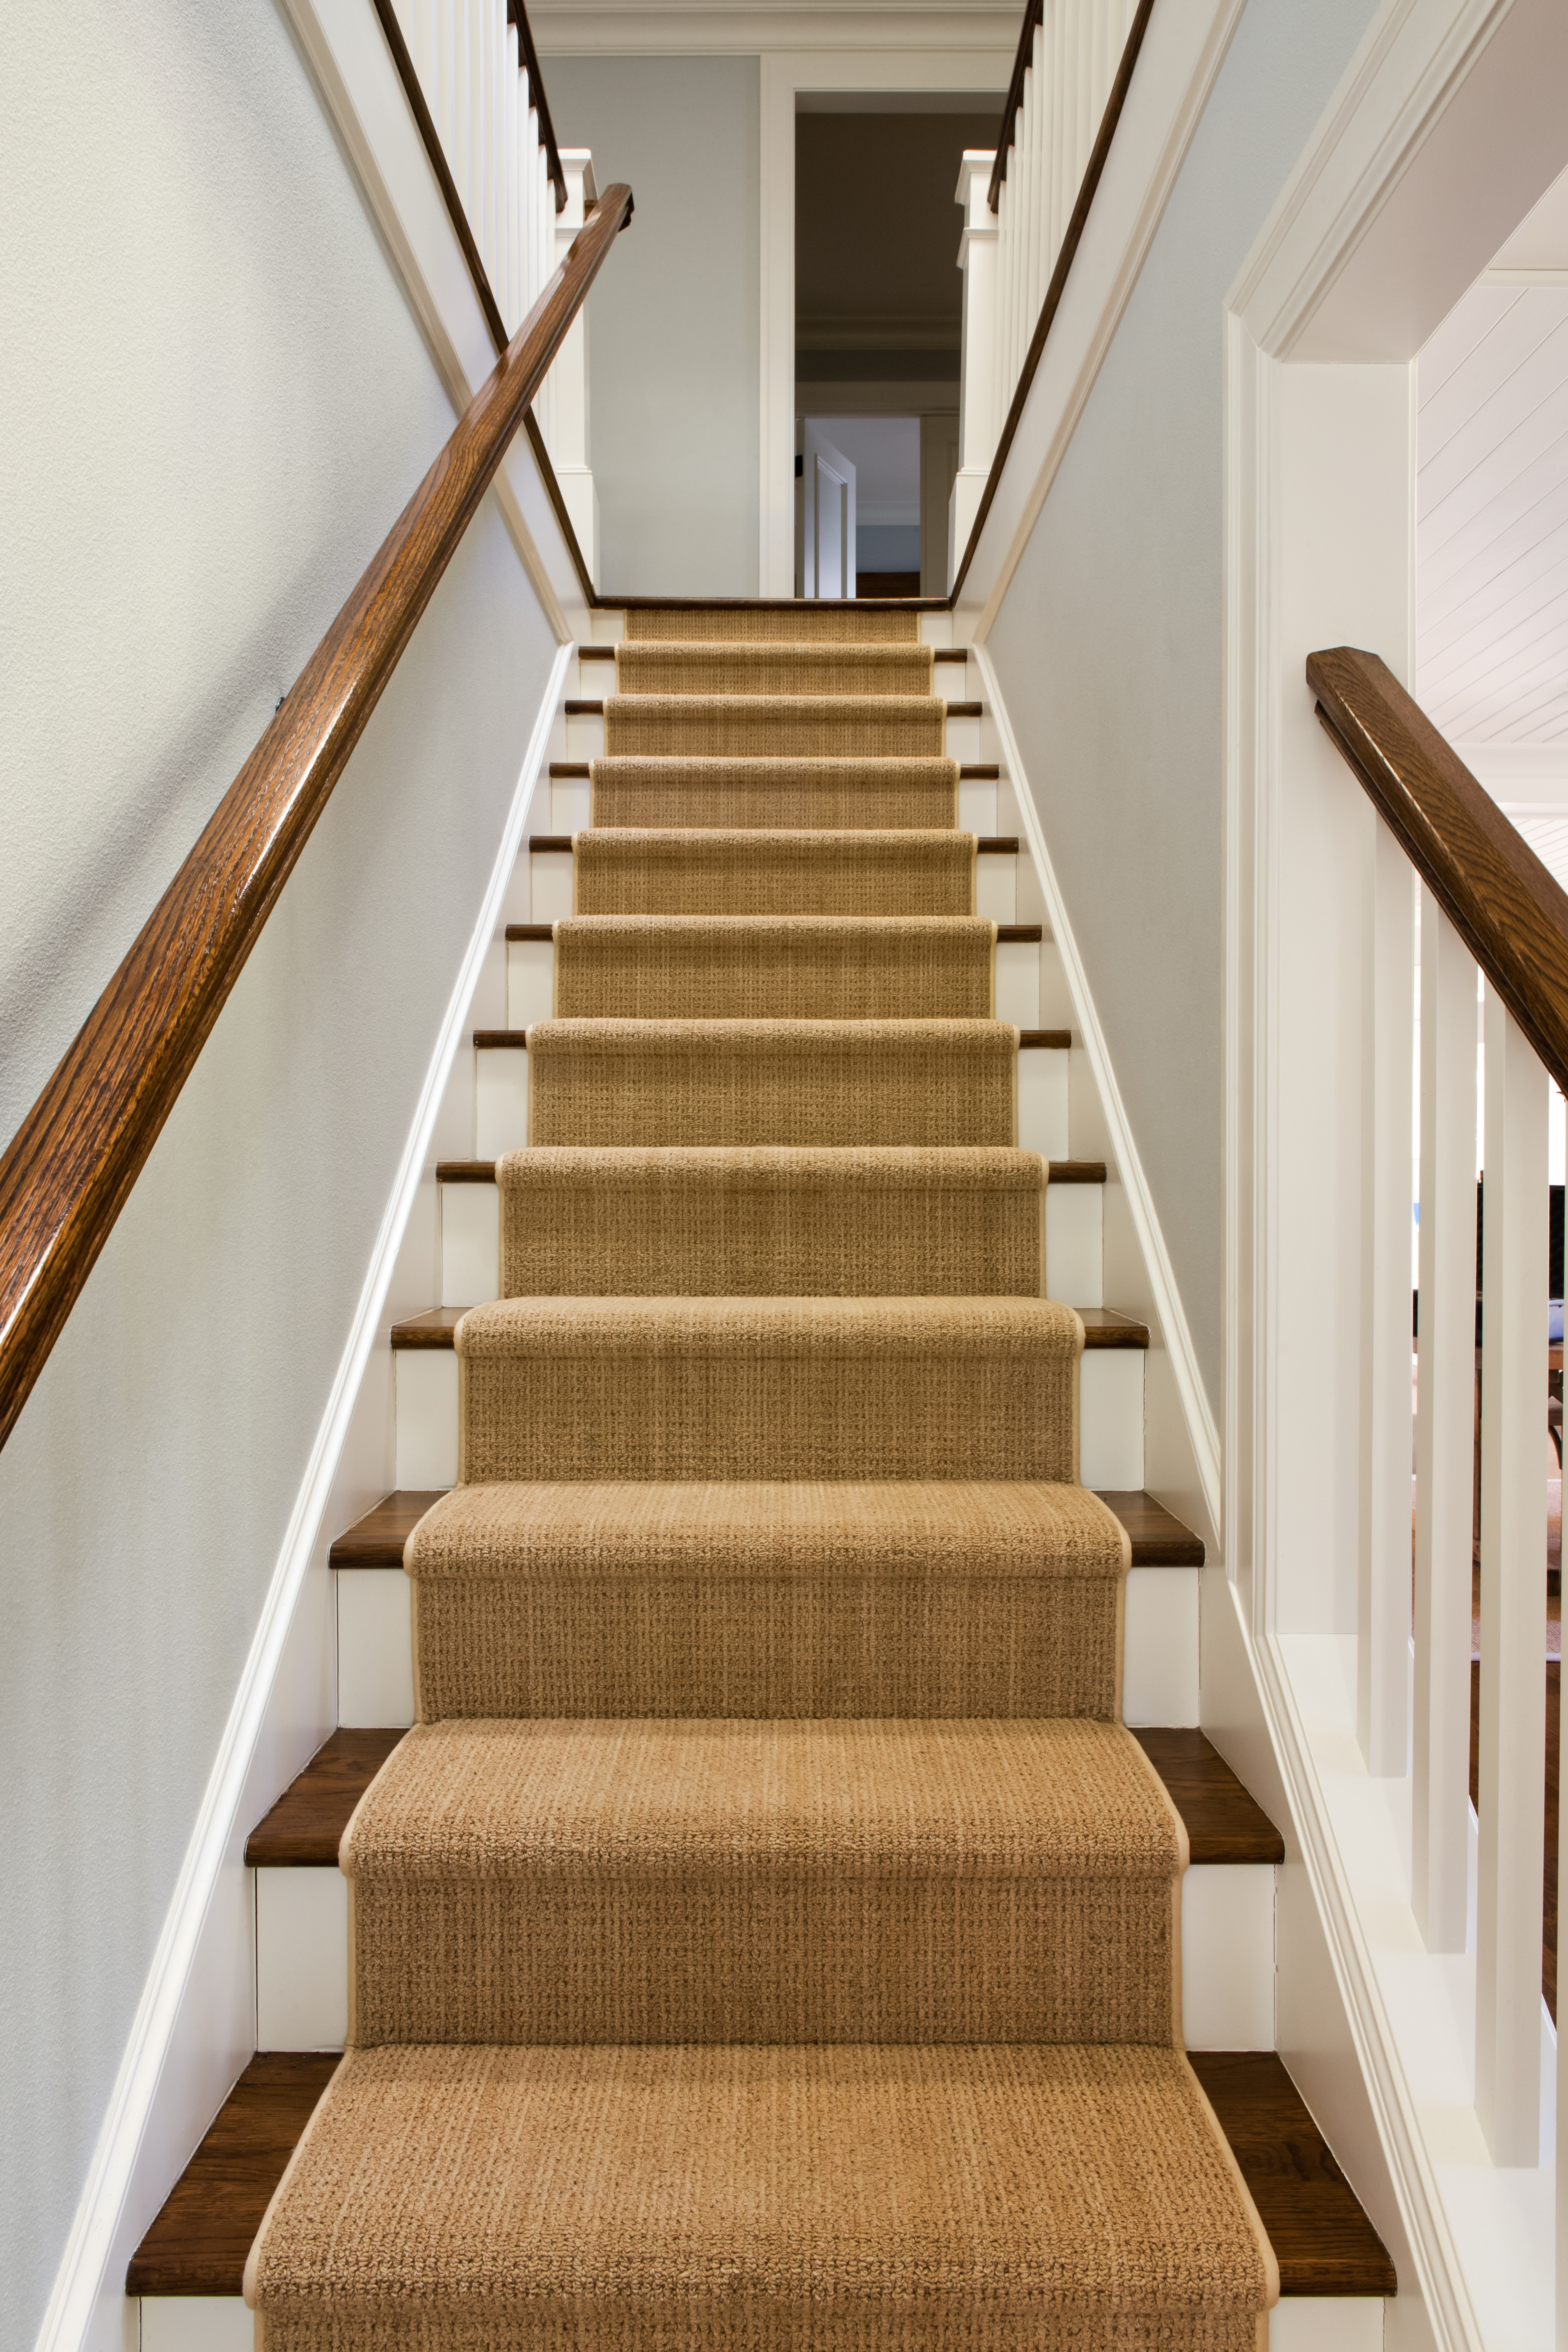 Inspiration about Stair Carpet Freehold Marlboro Manalapan Throughout Rug Runners For Stairs (#2 of 20)